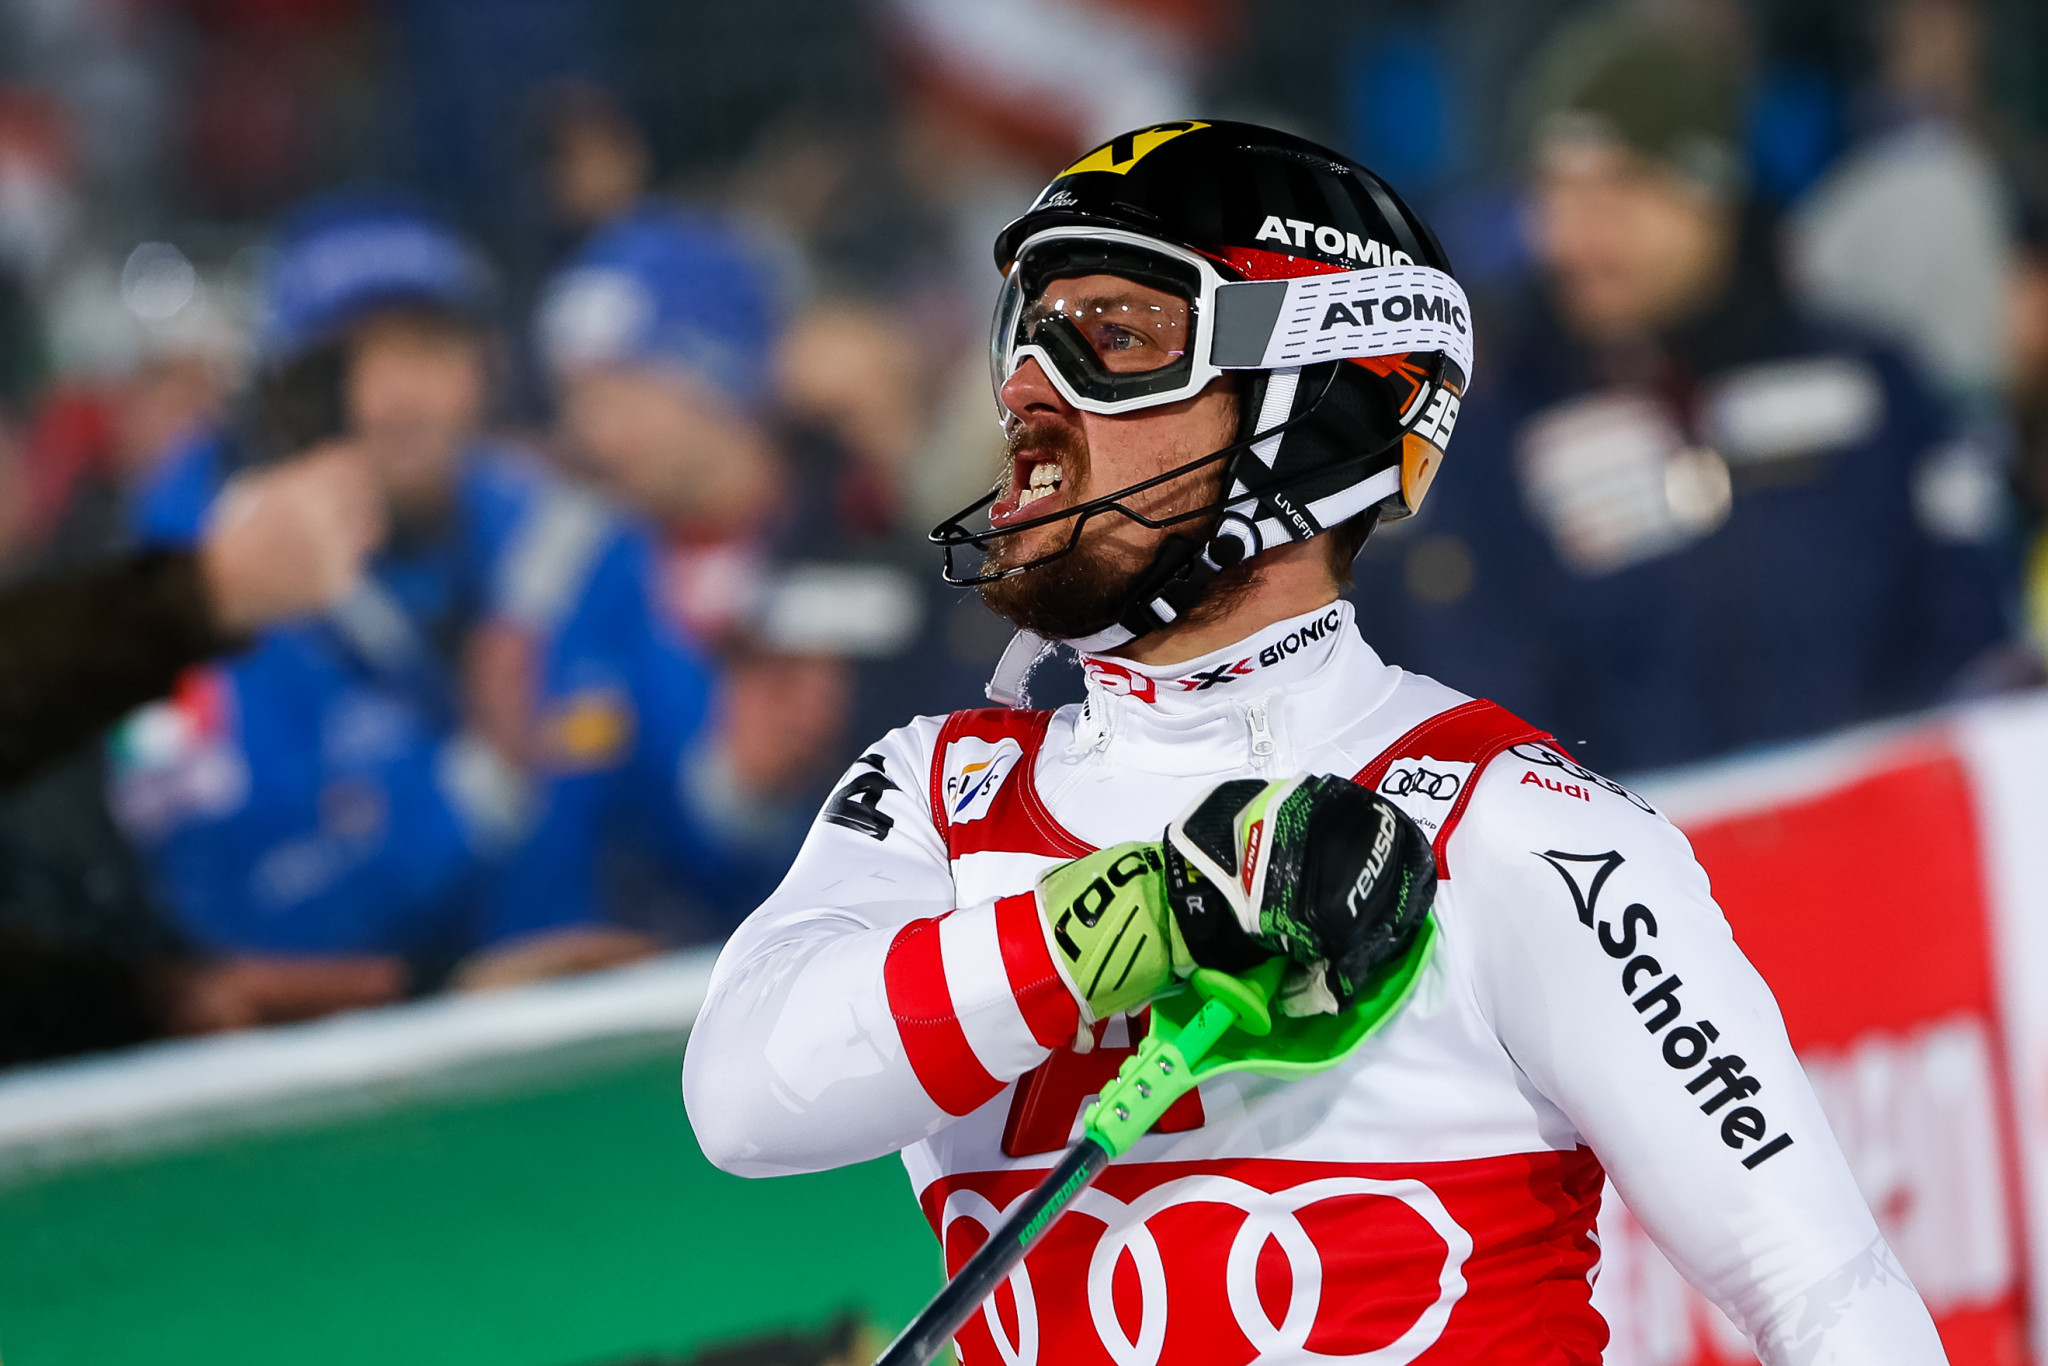 Hirscher going for gold again at famous Schladming night race